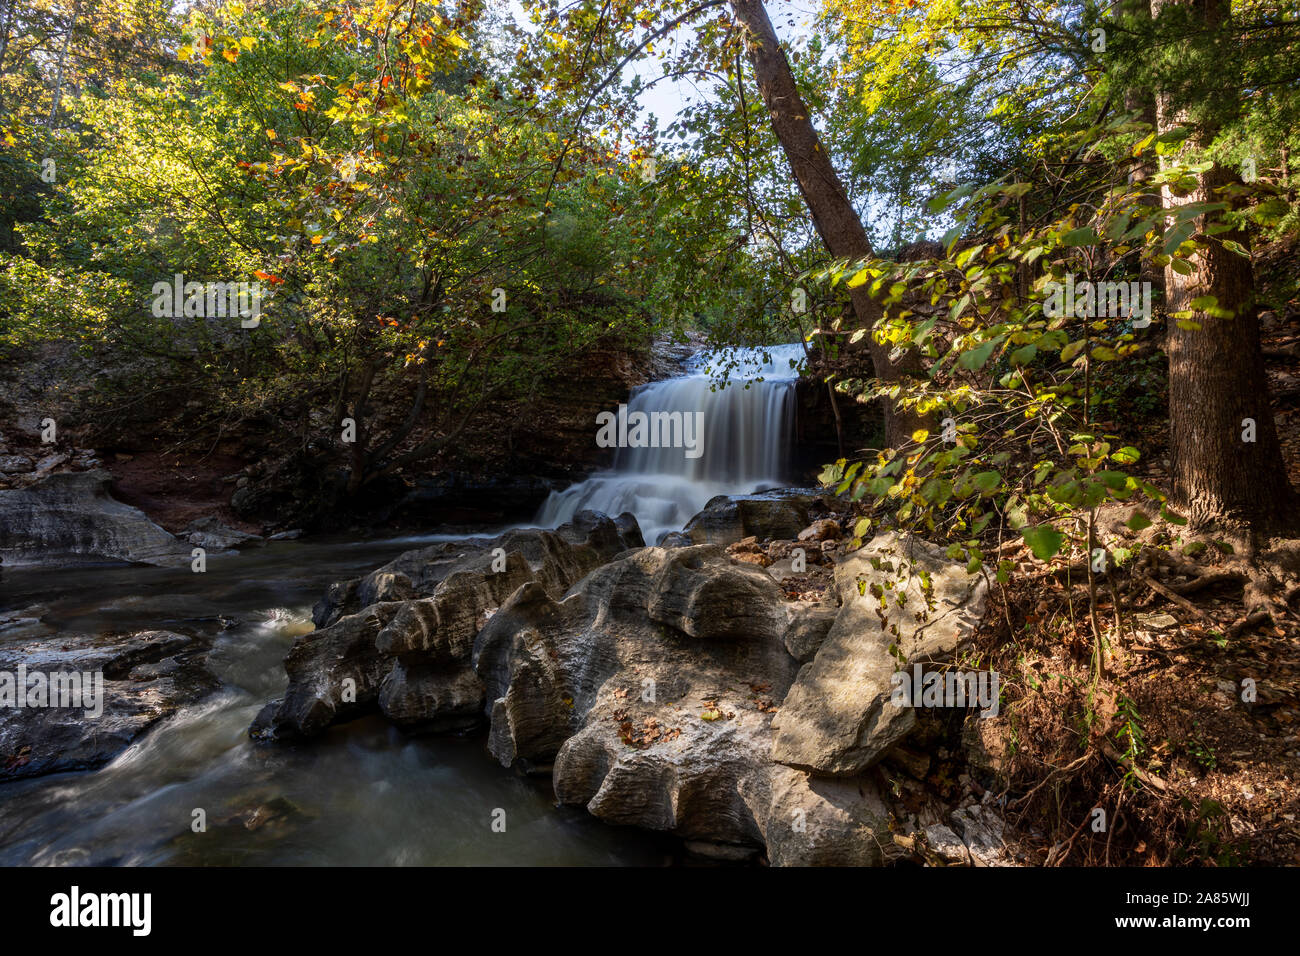 Tanyard Creek waterfall in Bella Vista, Arkansas Stock Photo